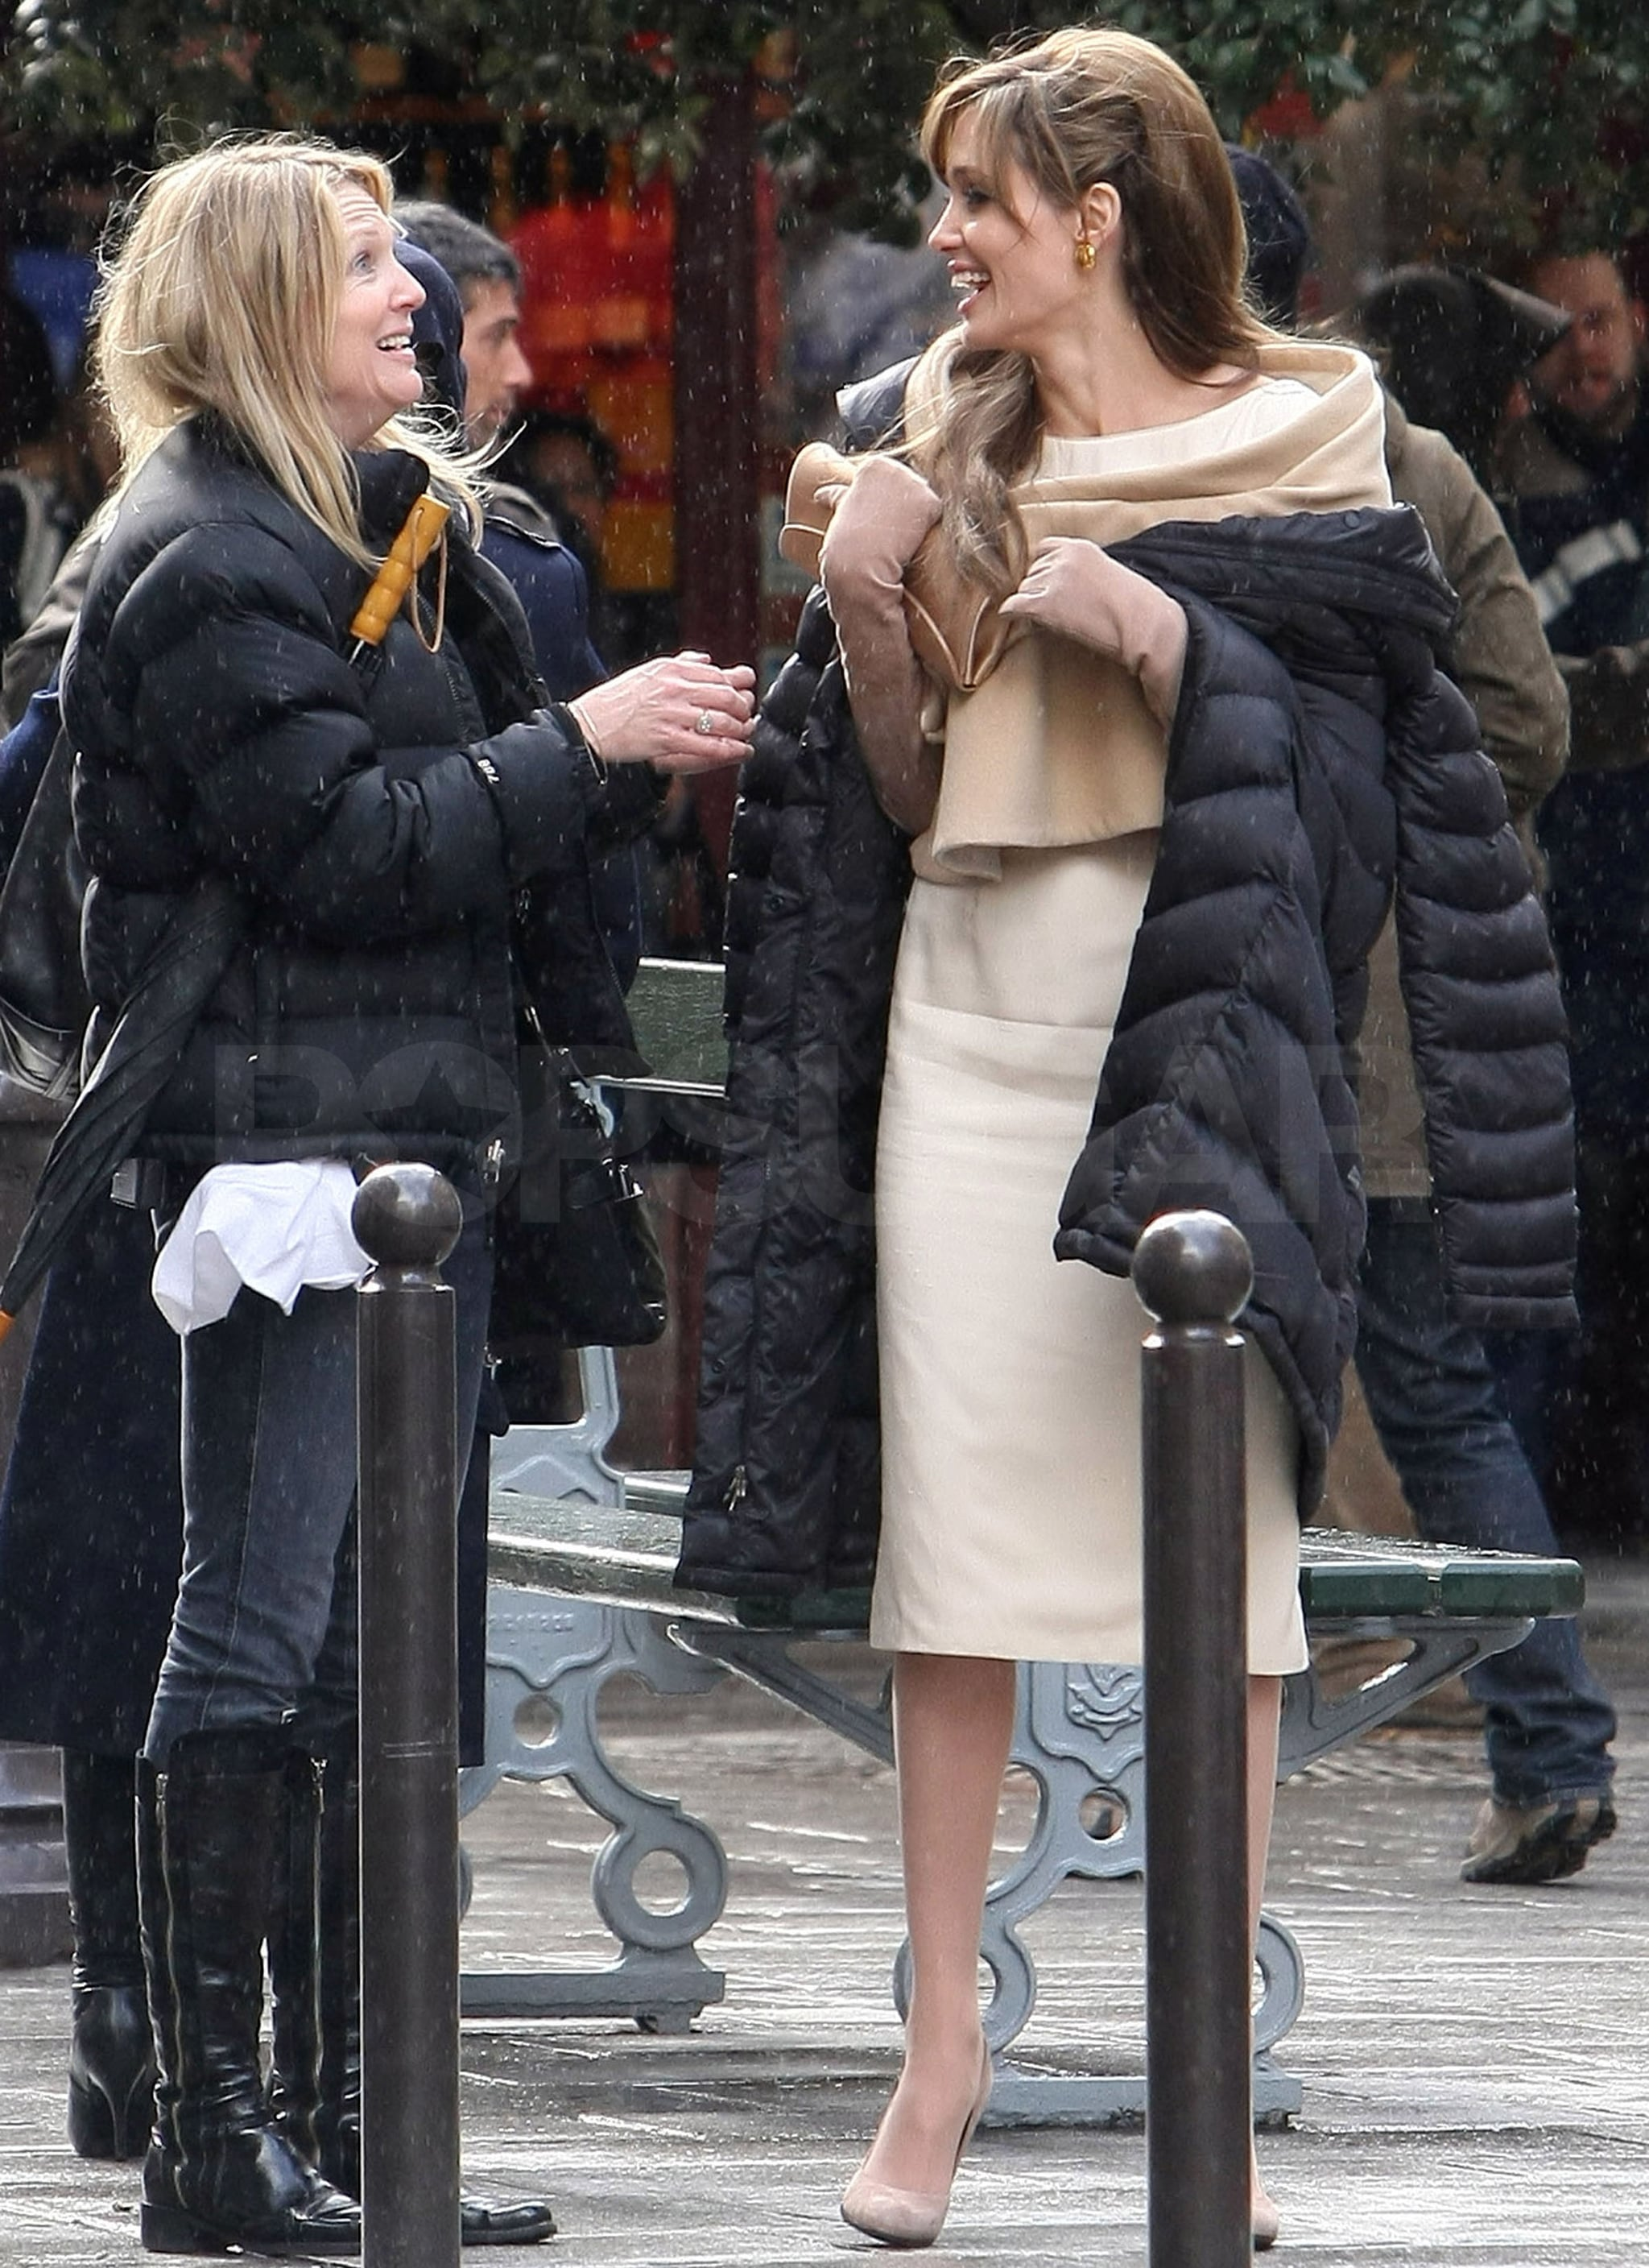 Special Interest Auto >> Photos of Angelina Jolie Filming The Tourist in Paris After a Very Public Date Night With Brad ...